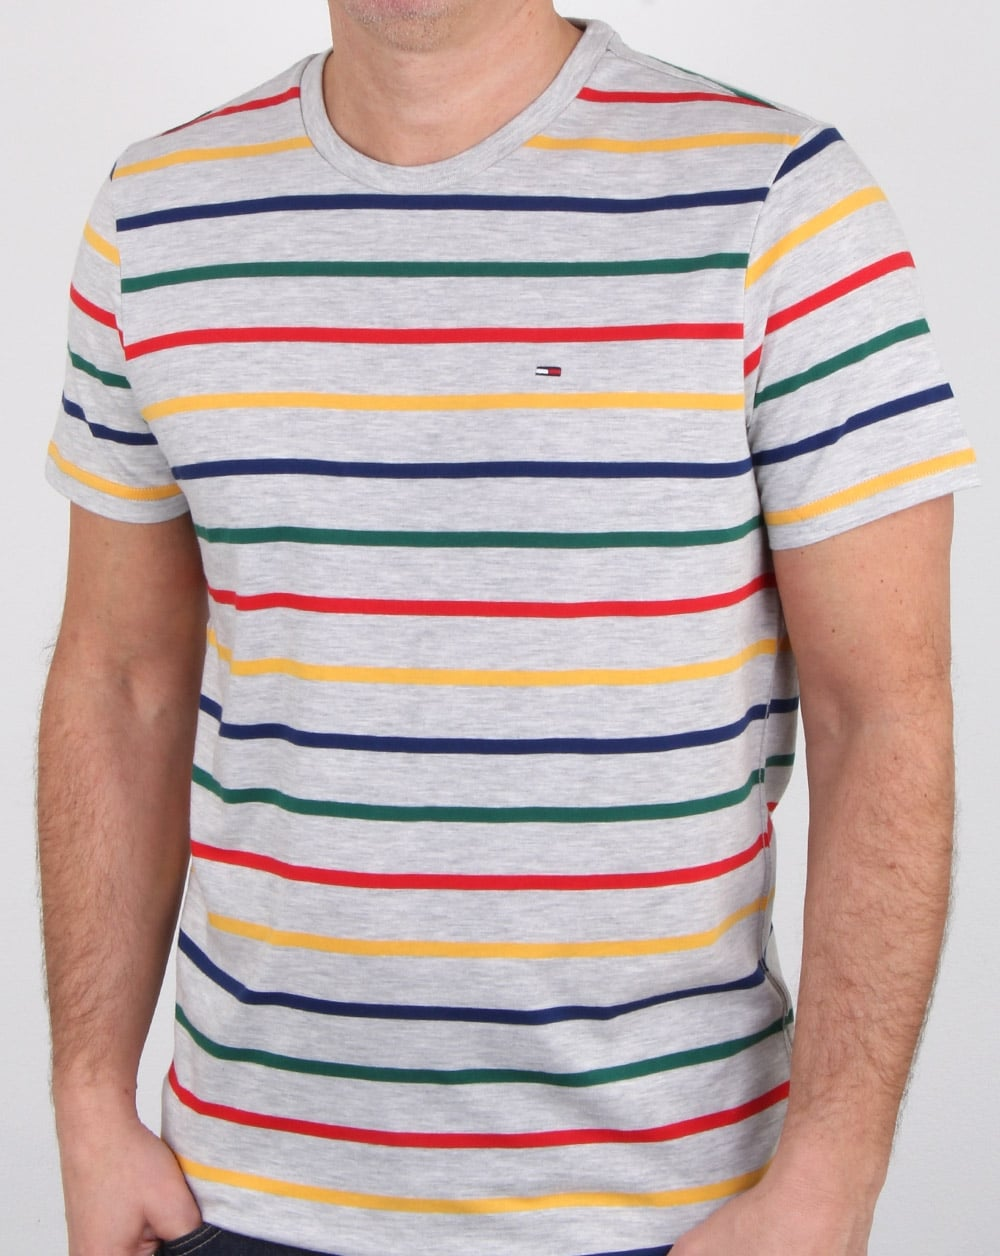 733cf94c4a Tommy Hilfiger Jeans Tommy Hilfiger Multi Stripe T Shirt White